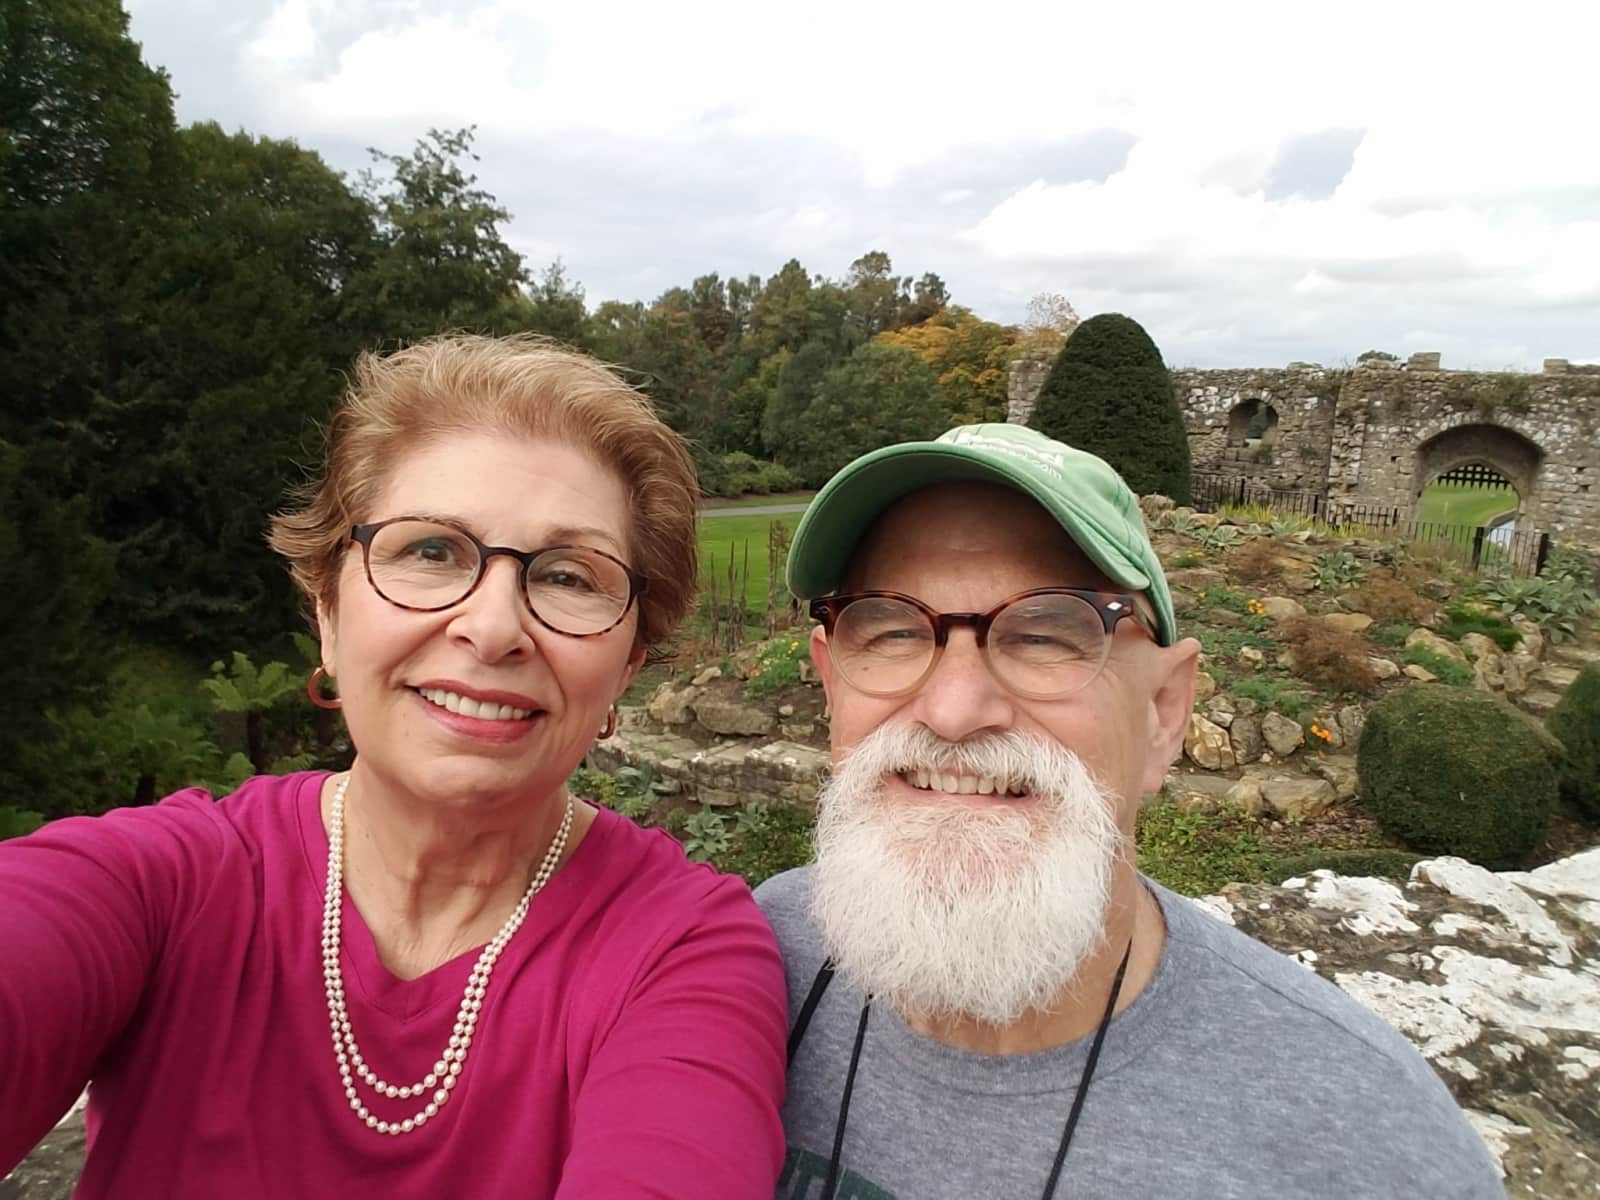 Evelyn & Frank from Williamsport, Pennsylvania, United States